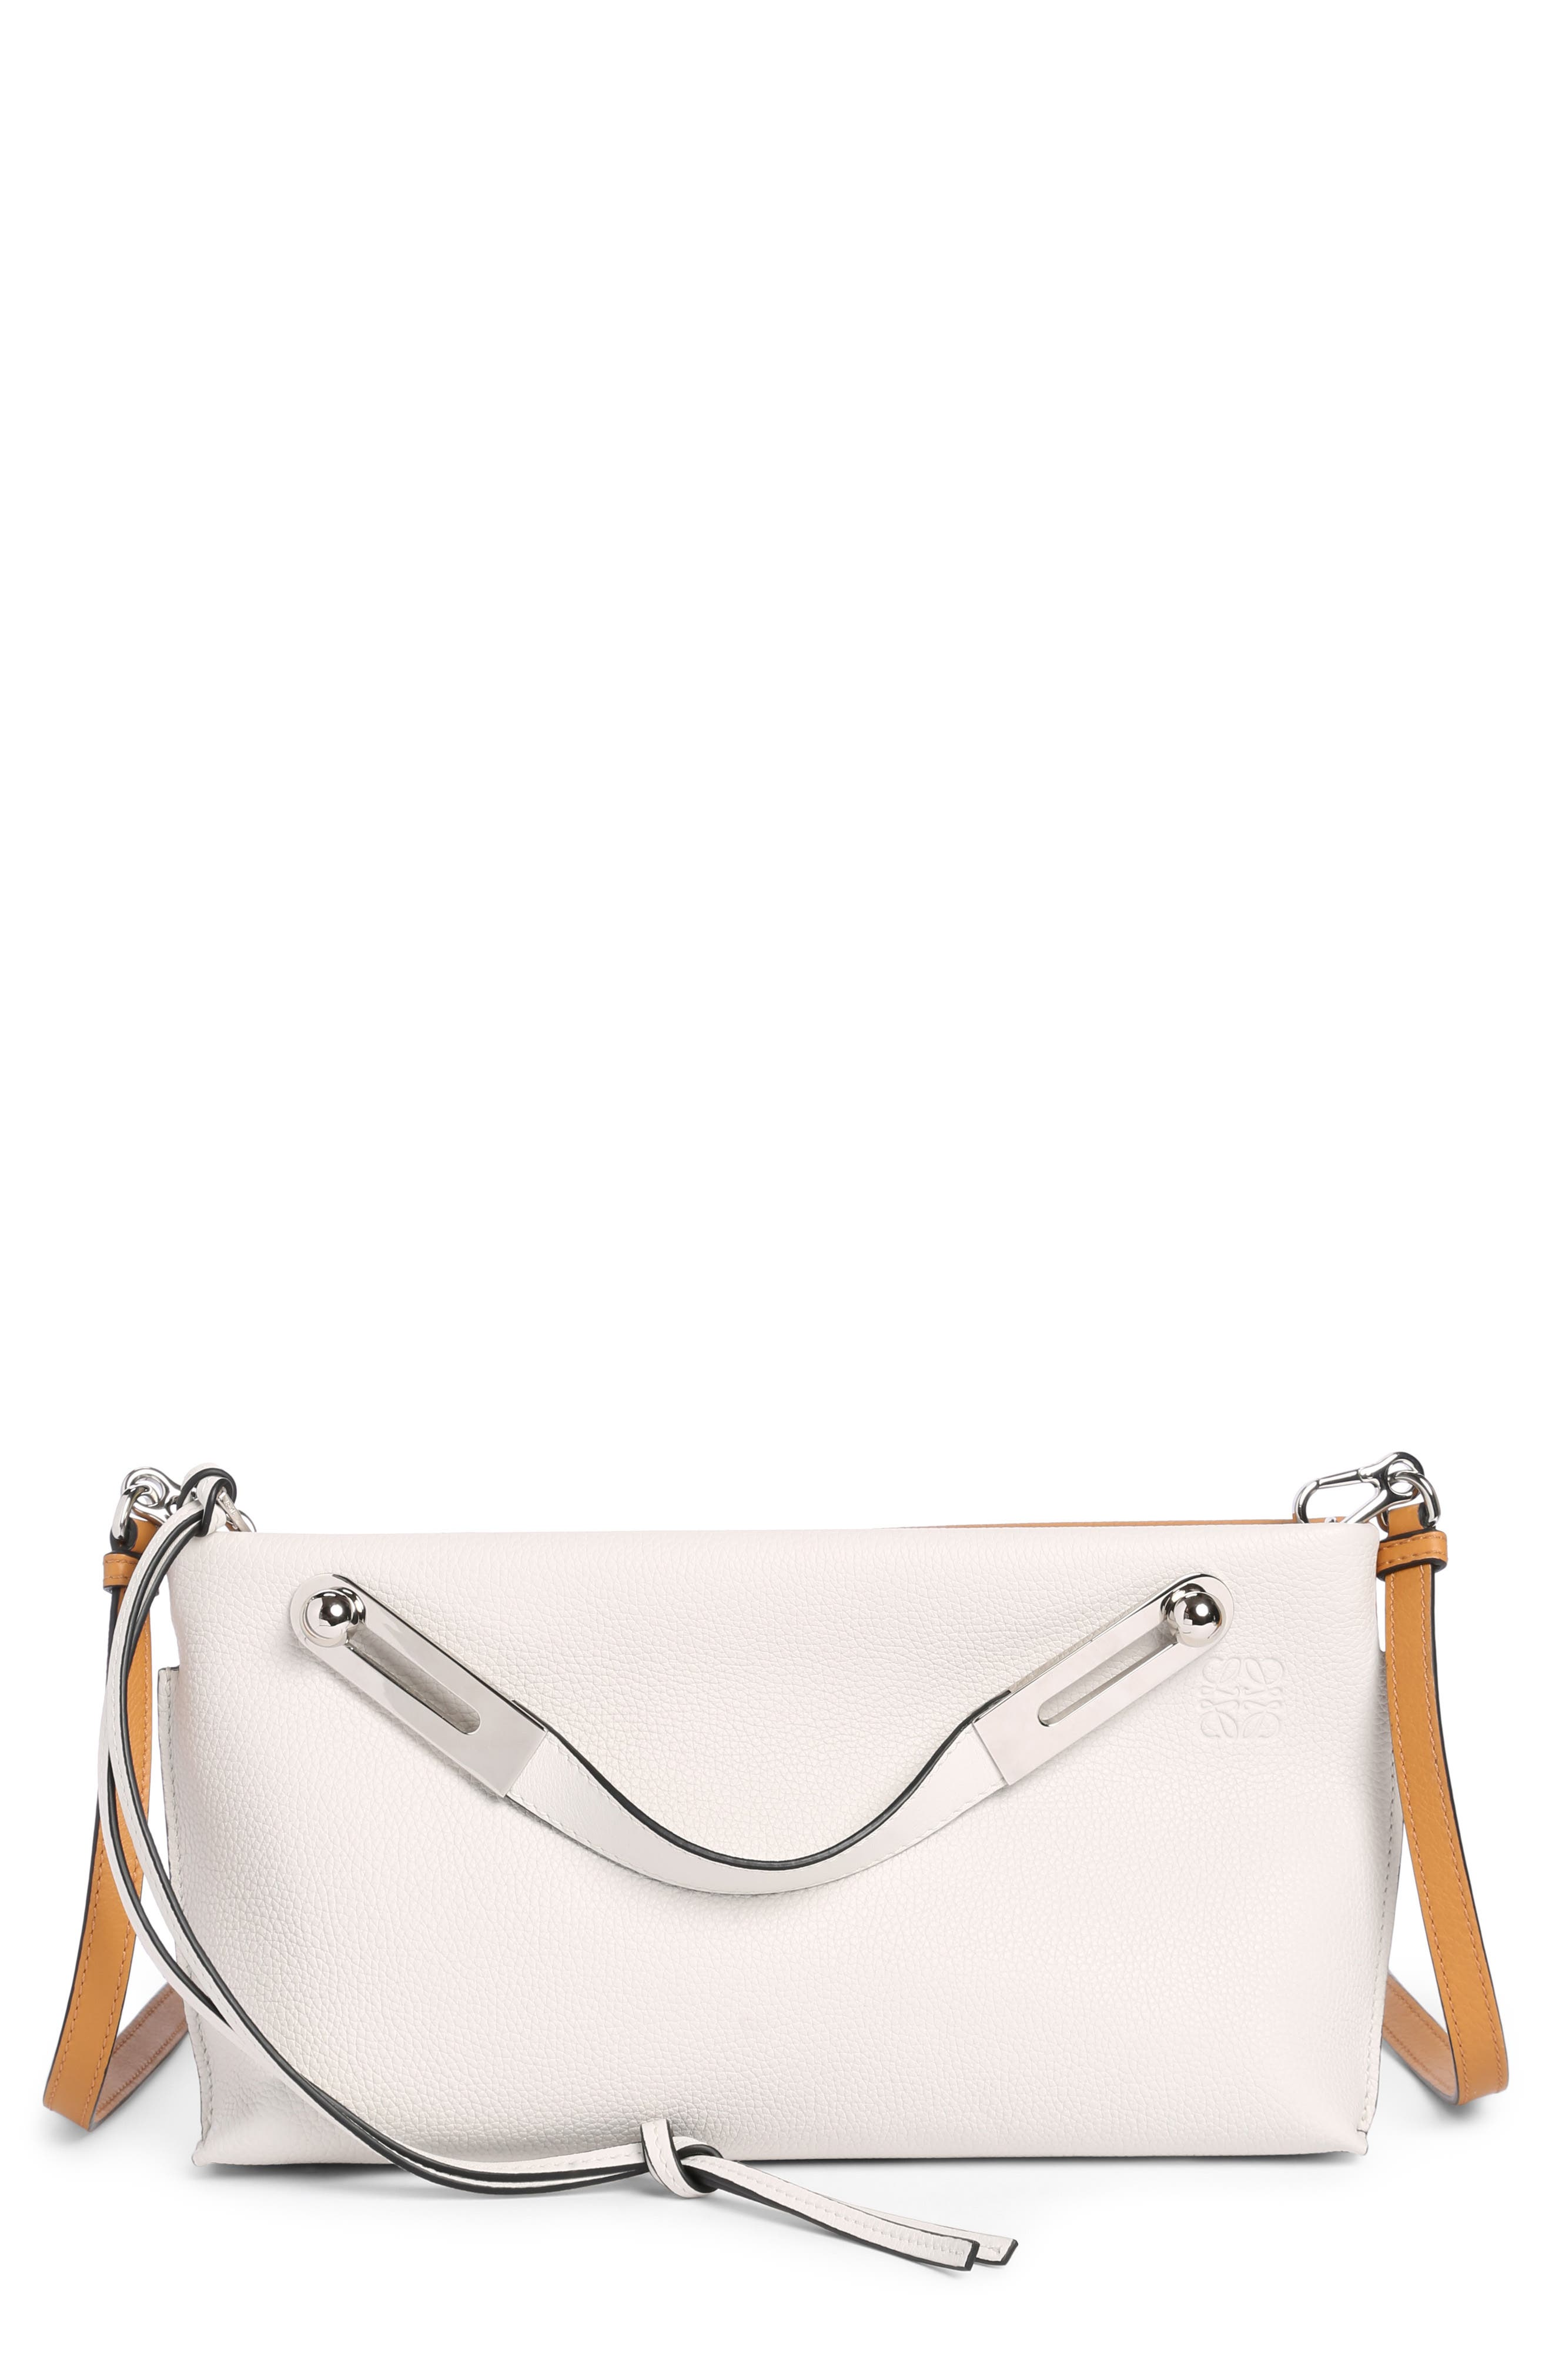 Small Missy Calfskin Leather Crossbody Bag,                         Main,                         color, 141